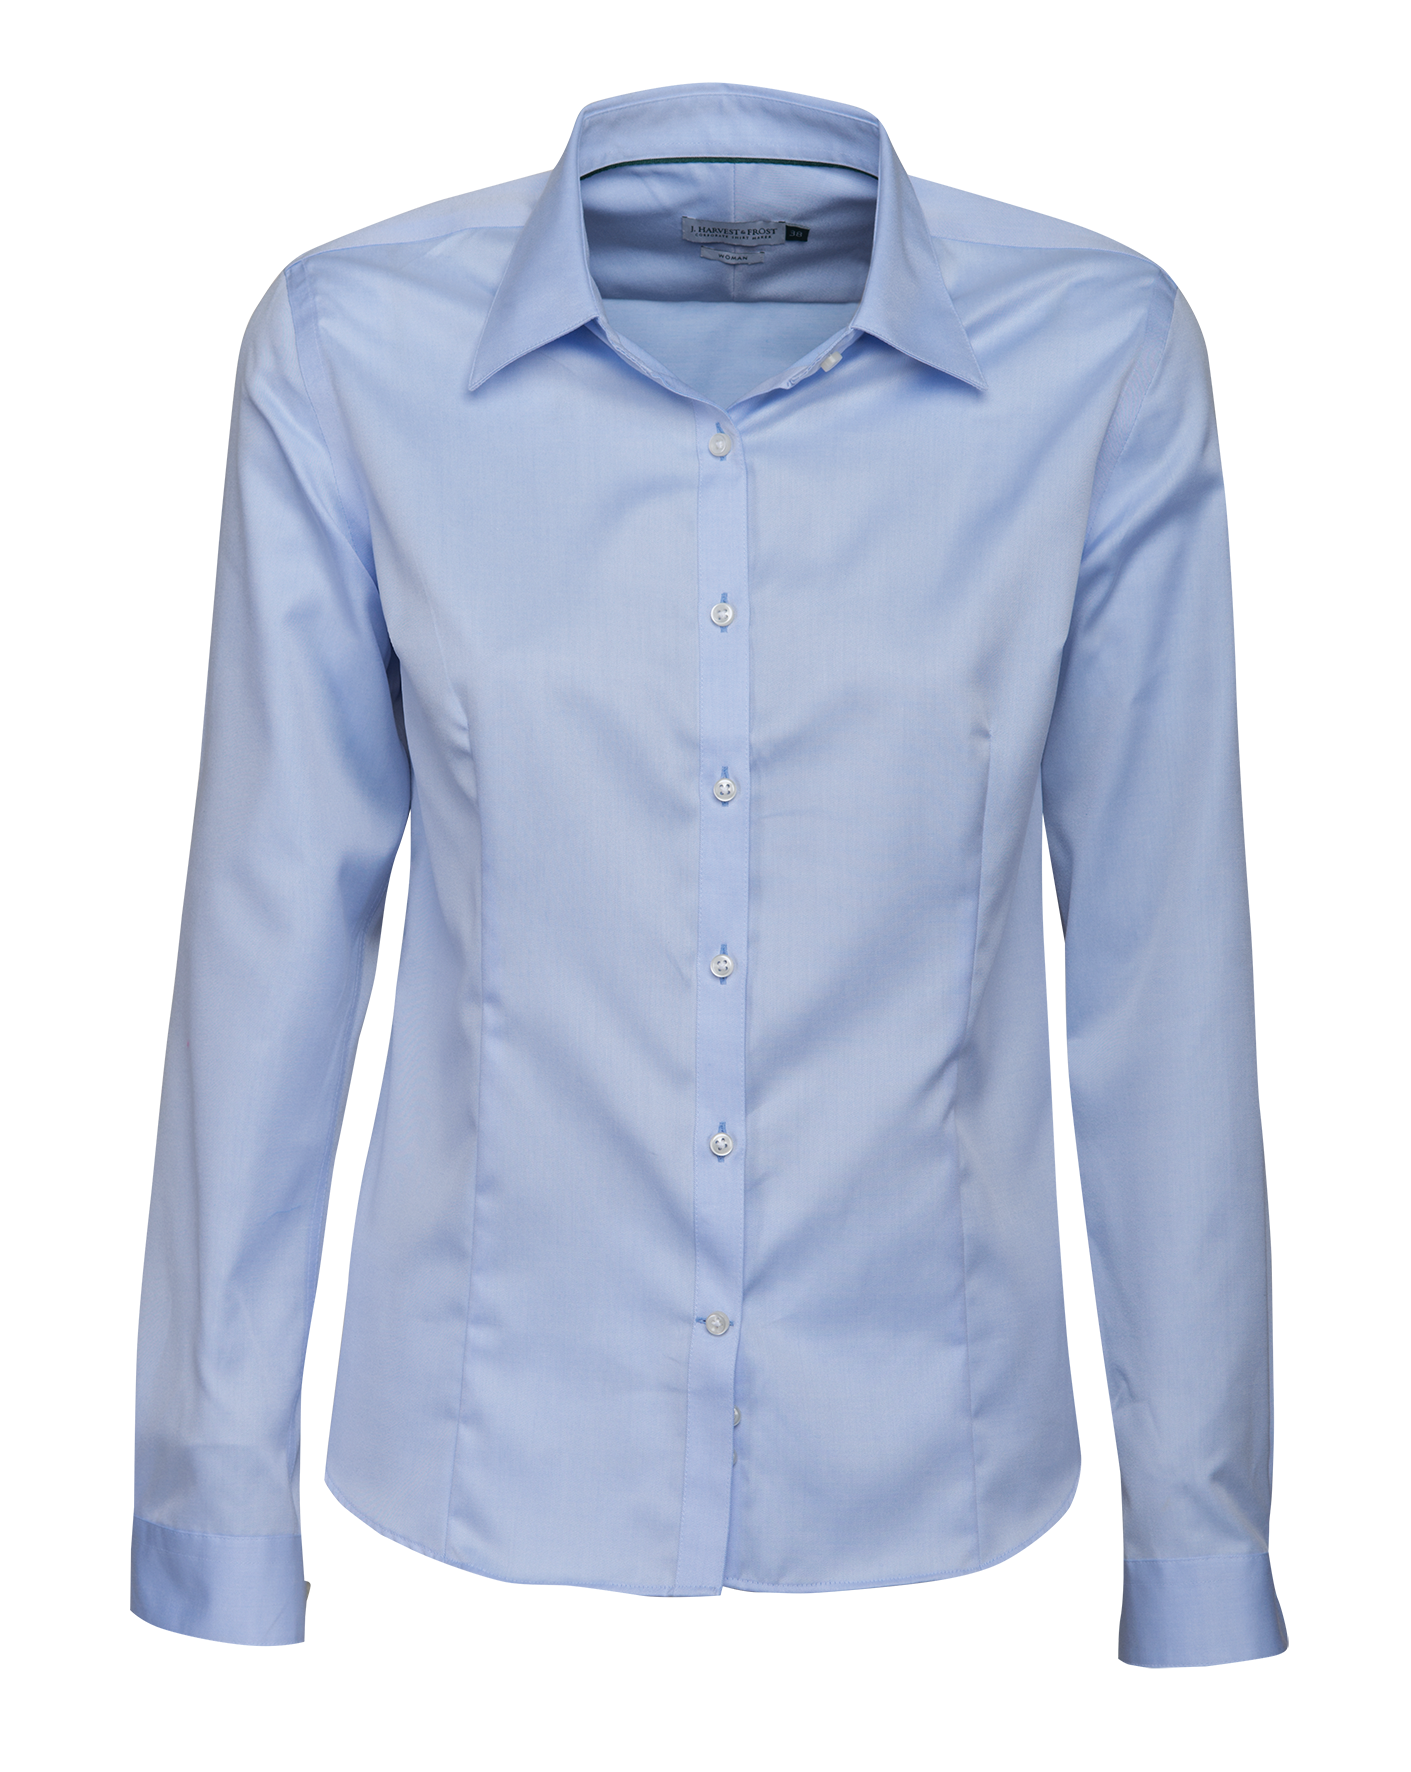 J.H and Frost Green Bow 01 Ladies Shirt in Sky Blue